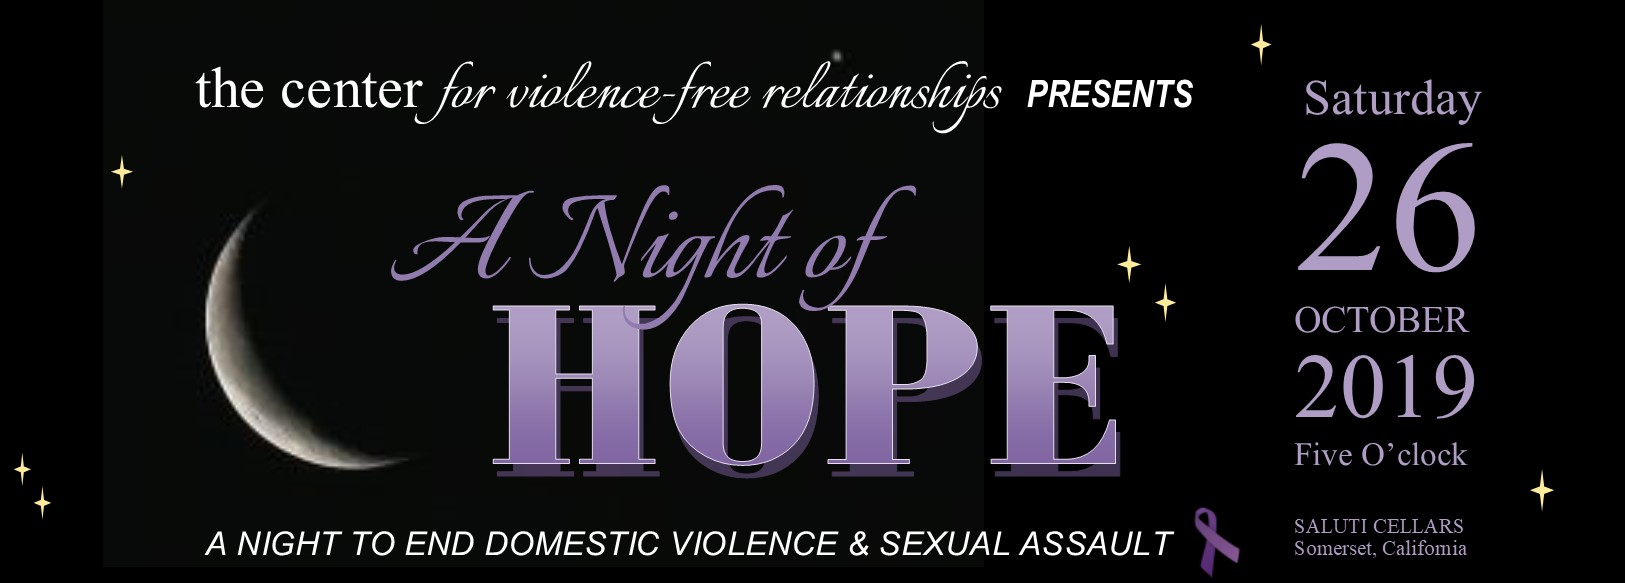 A Night of Hope - The Center for Violence-Free Relationships